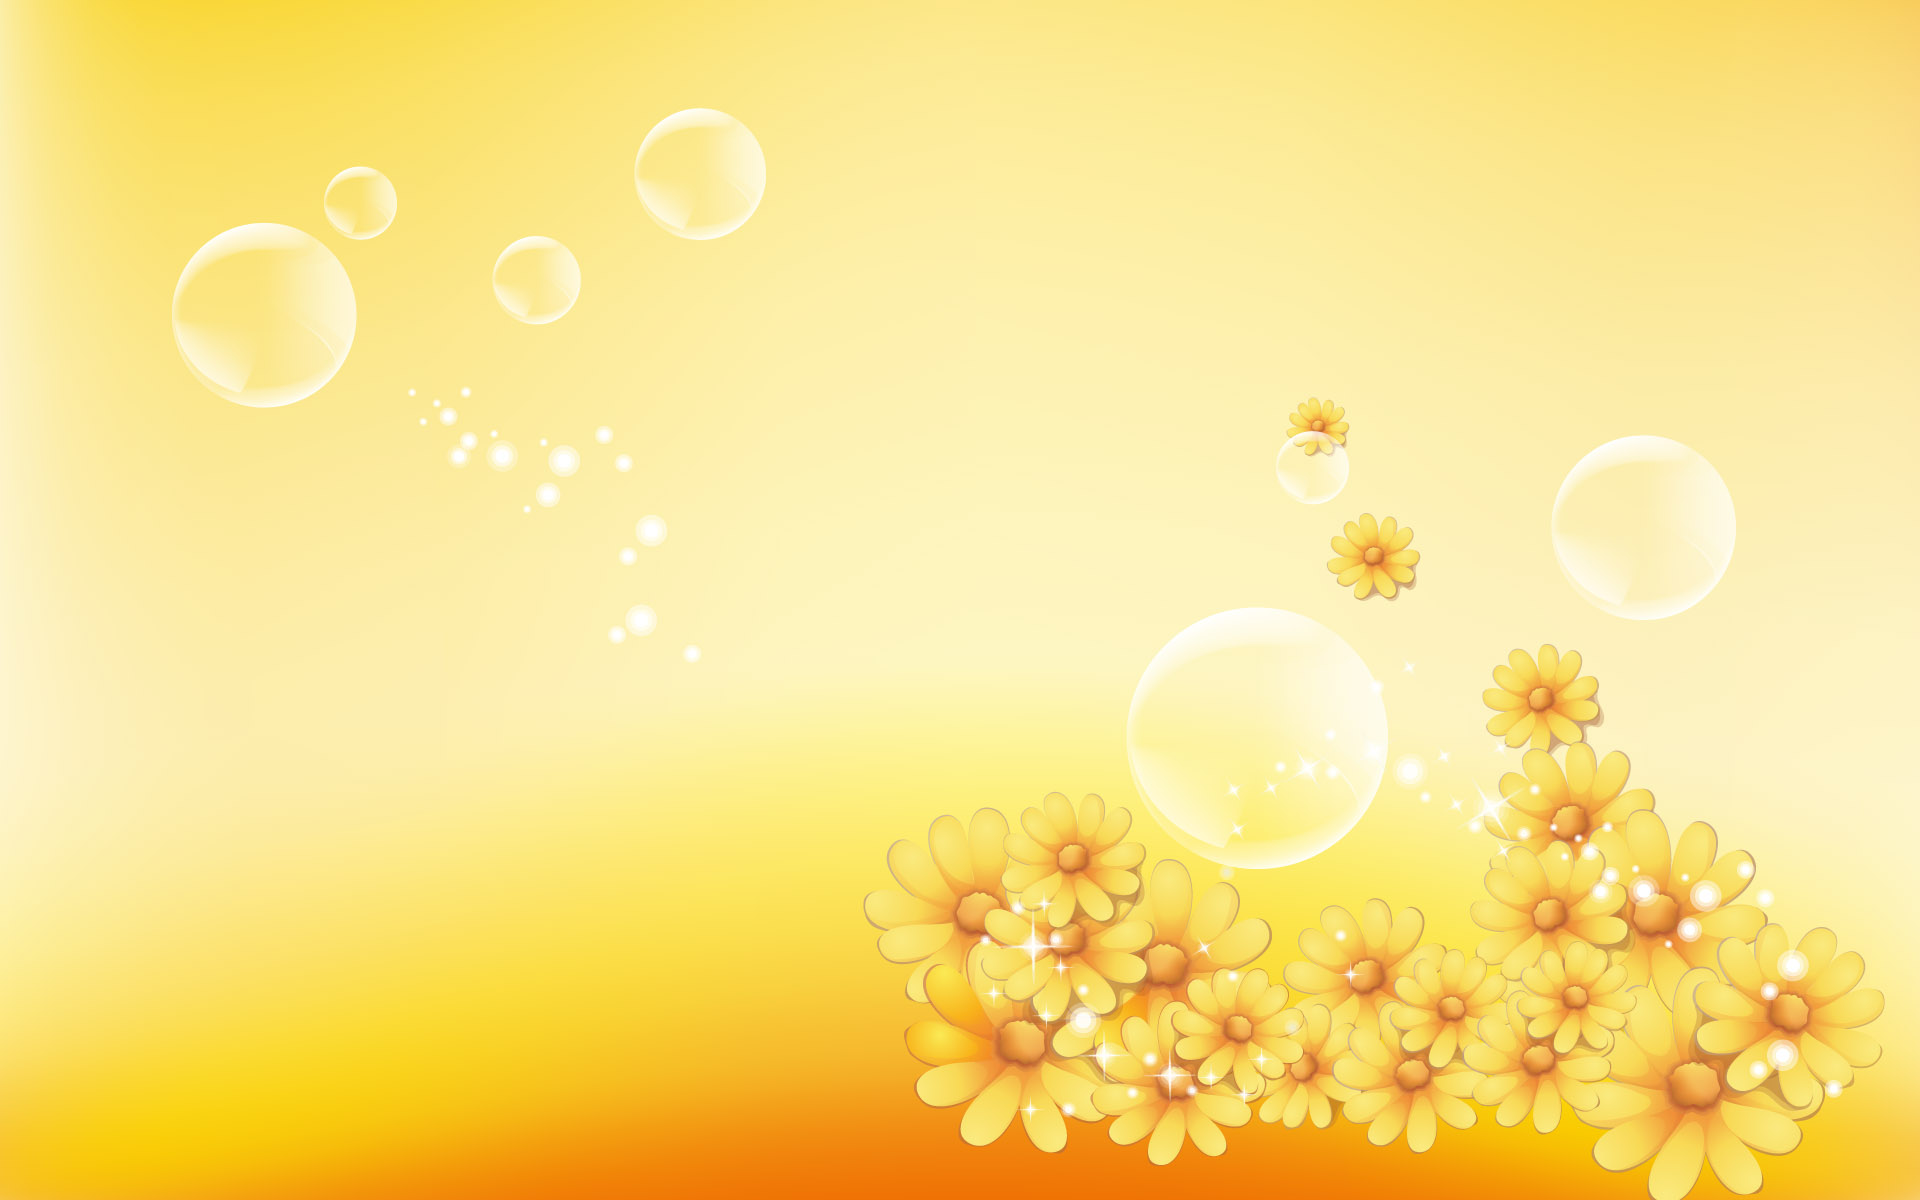 Yellow Colour Wallpapers 6486 Wallpaper Walldiskpaper Mightylinksfo